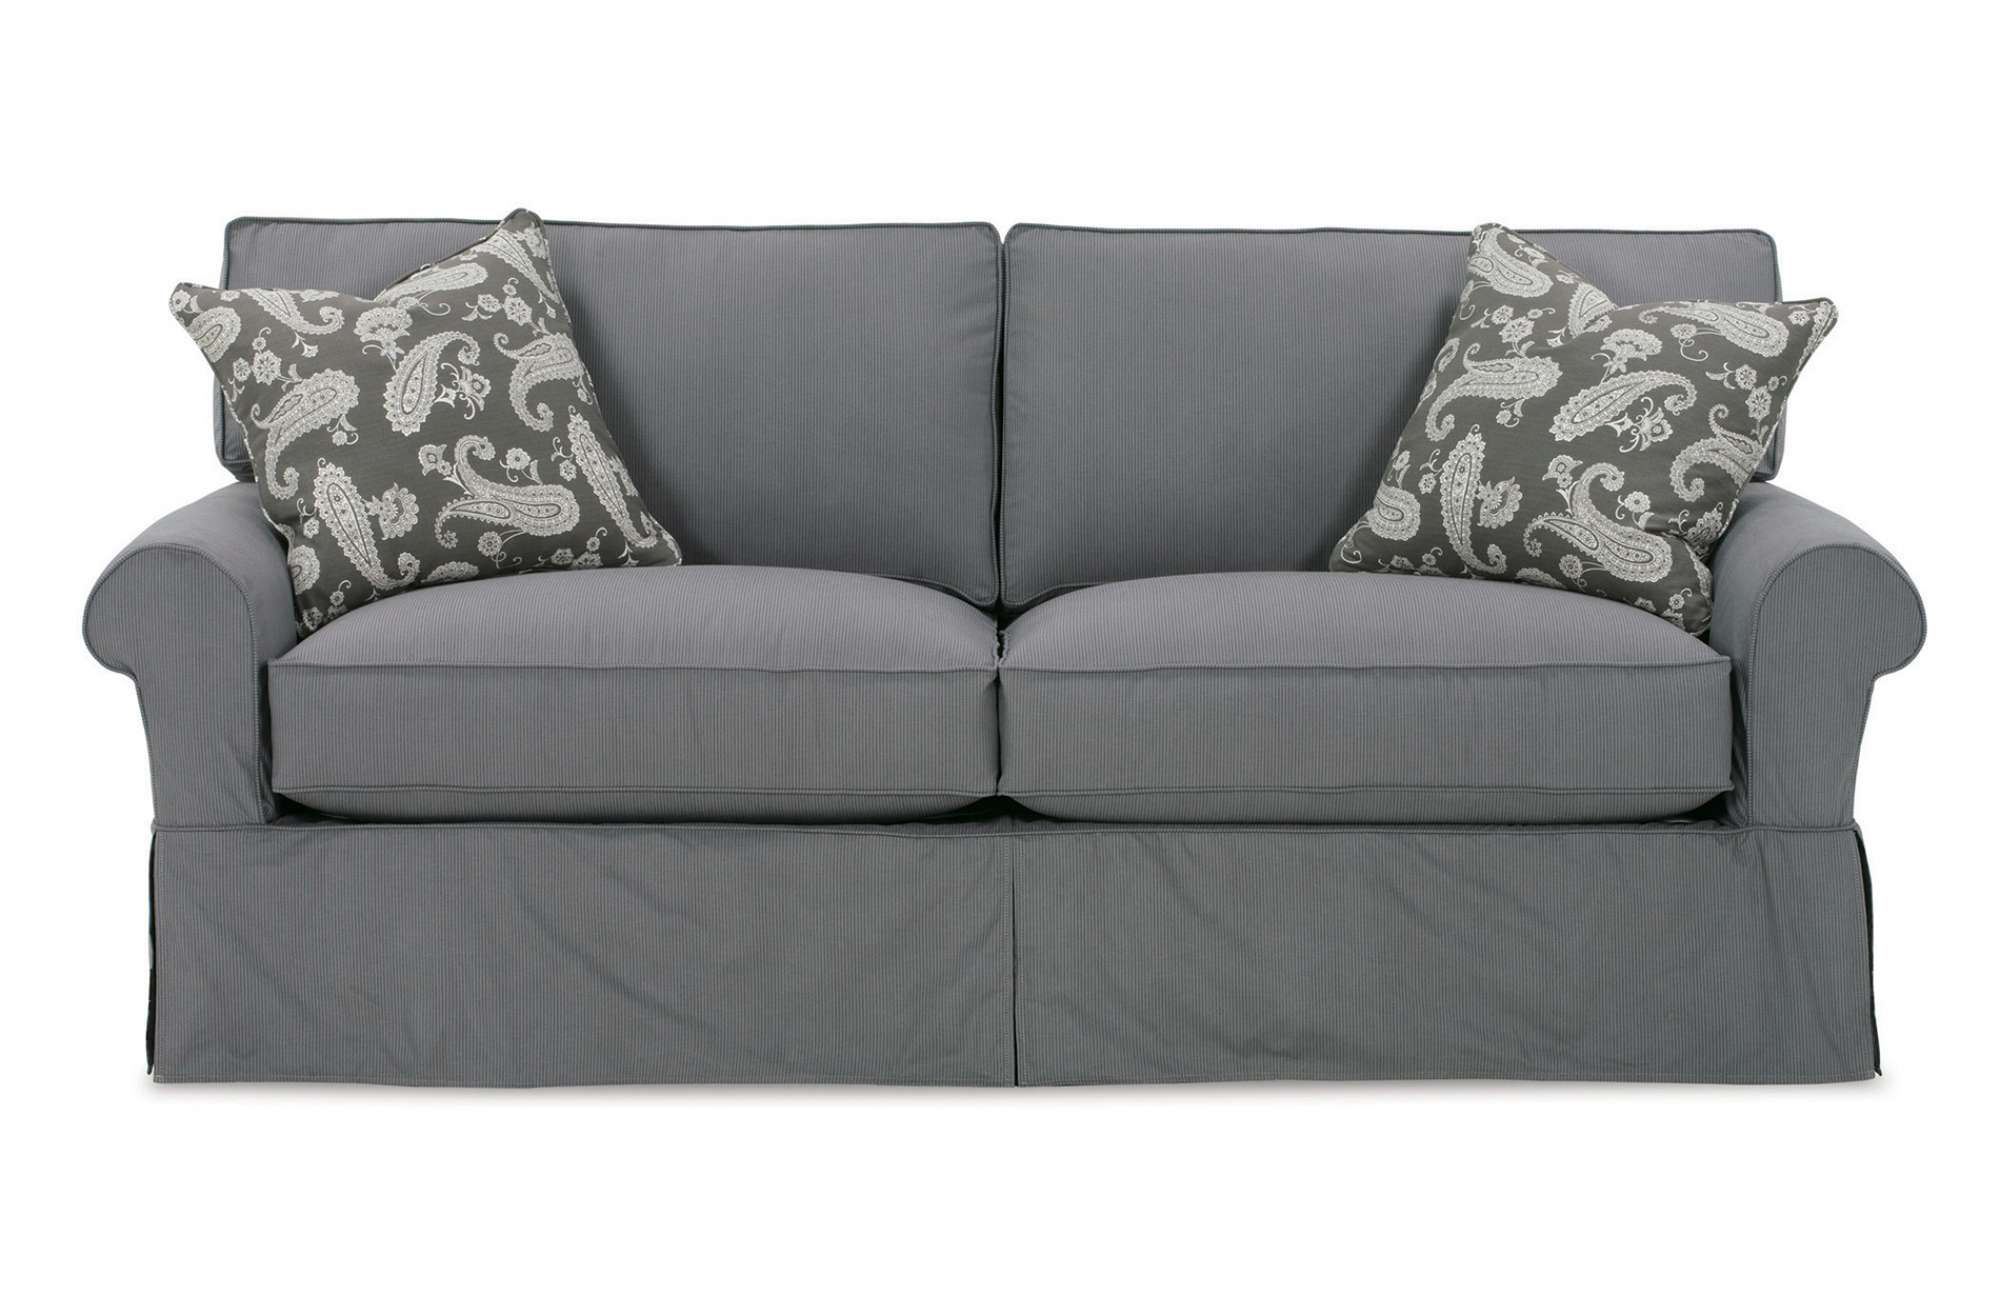 Focus On Furniture Sofa Bed The Nantucket 2 Seat Slipcover Queen Sleeper Is A Modern